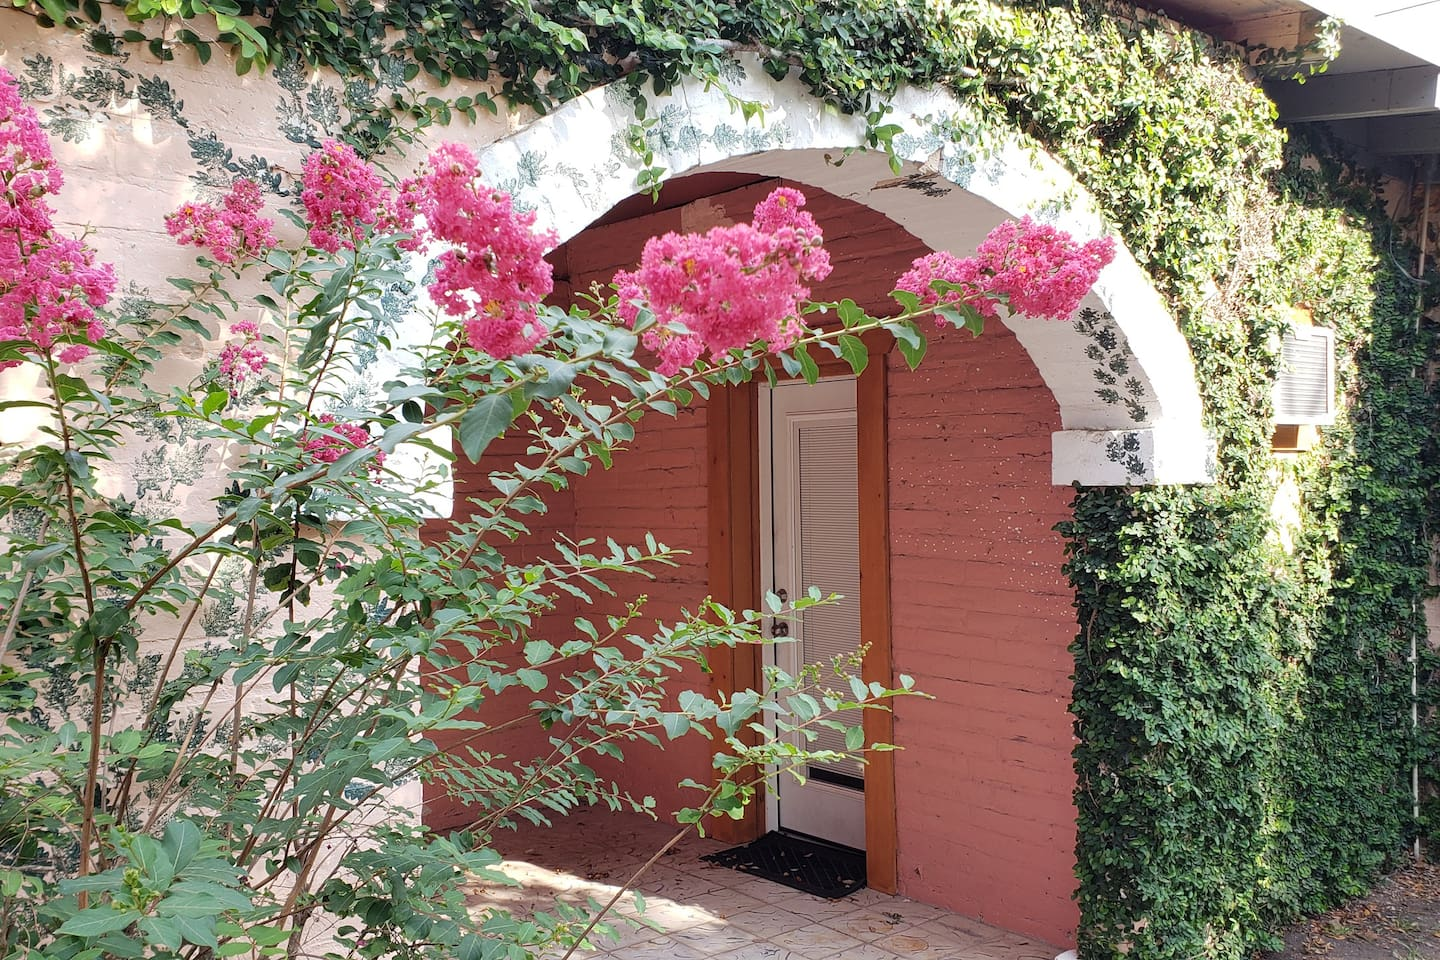 Crepe Myrtle always blooms from the middle to the end of July.